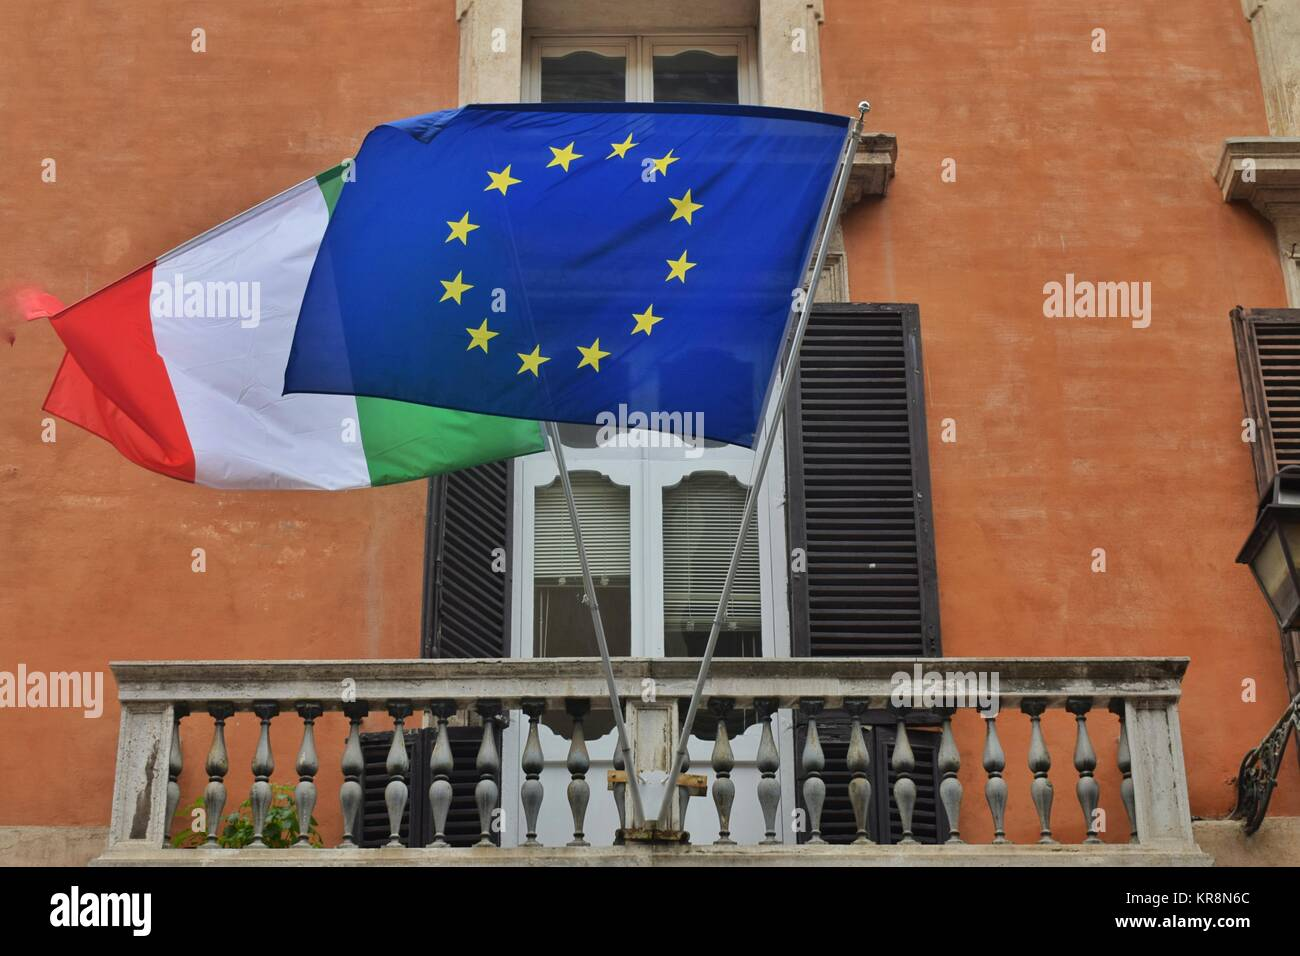 Flags of Italy and the European Union on a balcony of a building in the historic center of Rome - Stock Image